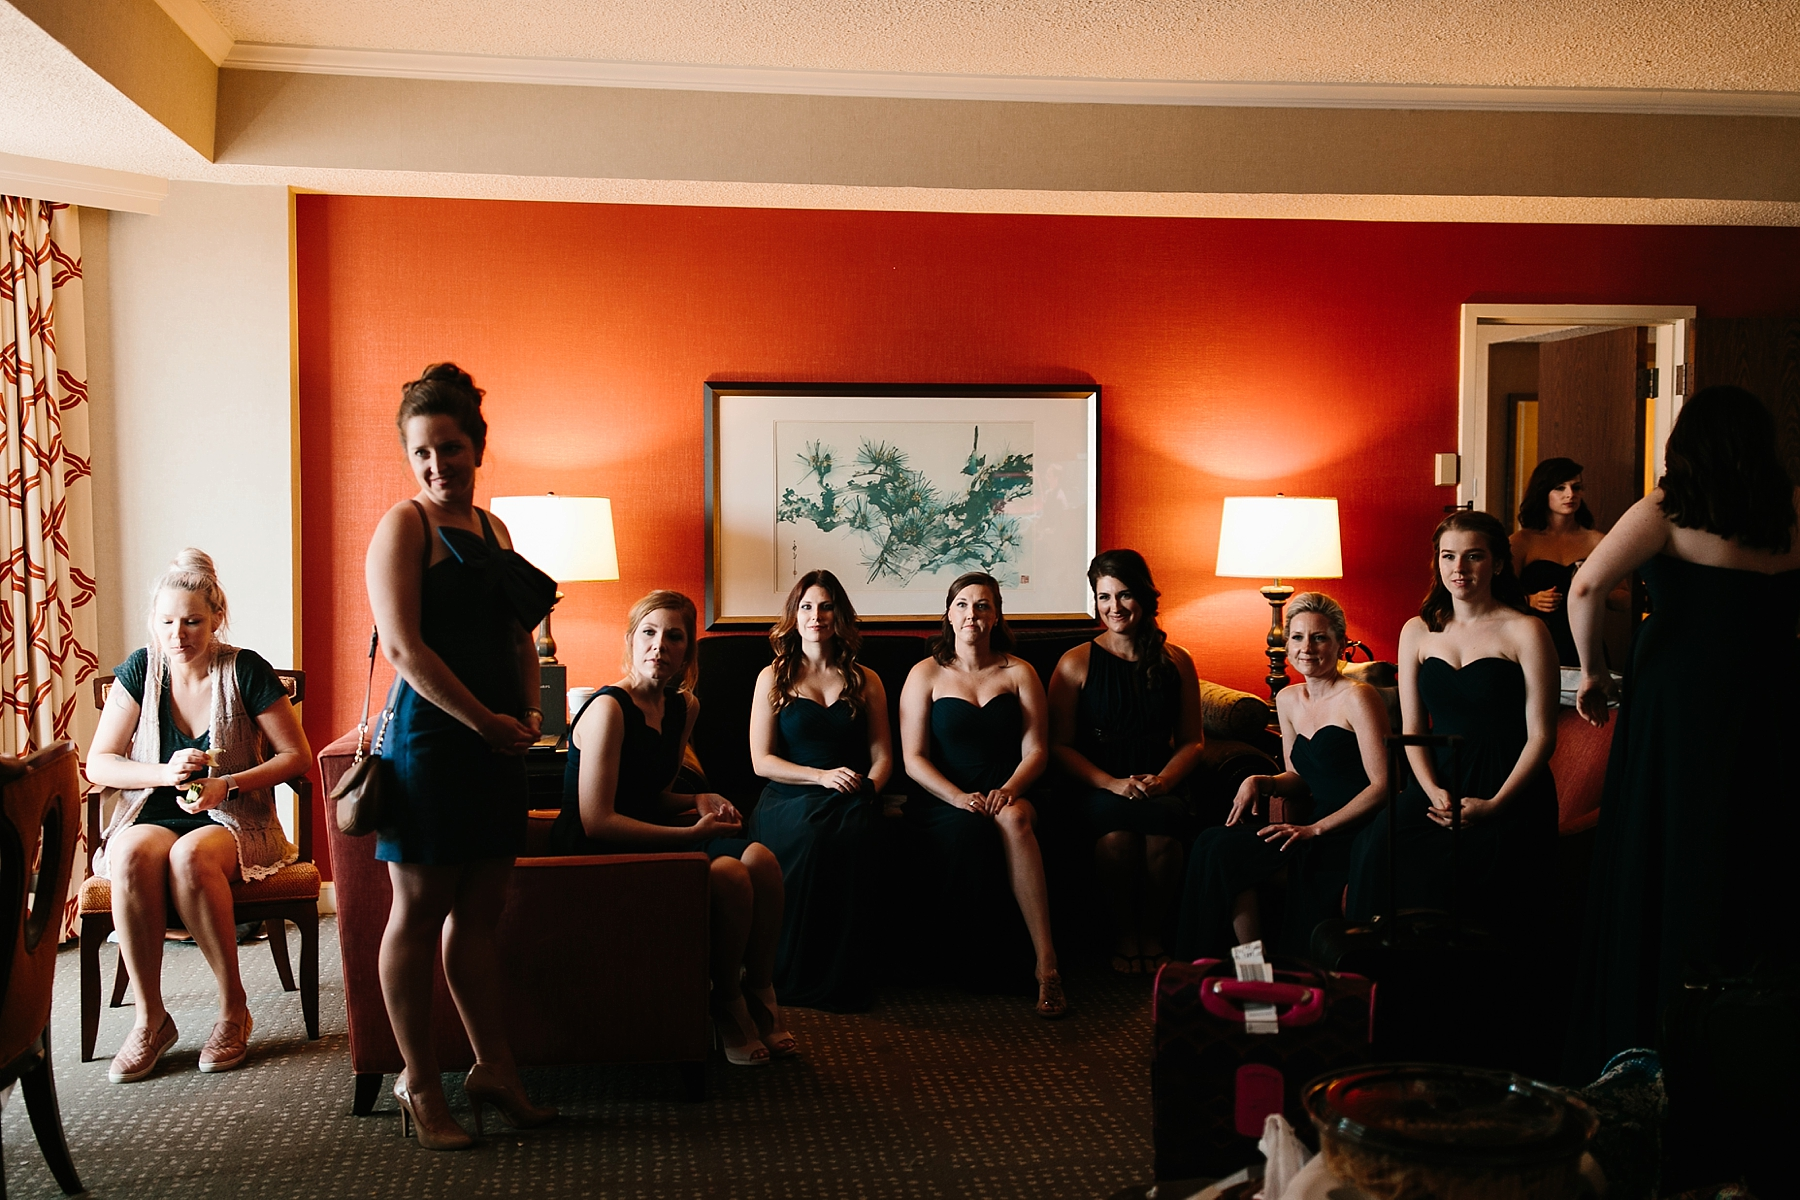 Emily + Caleb _ an elegant, intentional, industrial style wedding with navy + gold accents at 6500 in Dallas, TX by North Texas Wedding Photographer Rachel Meagan Photography _ 018